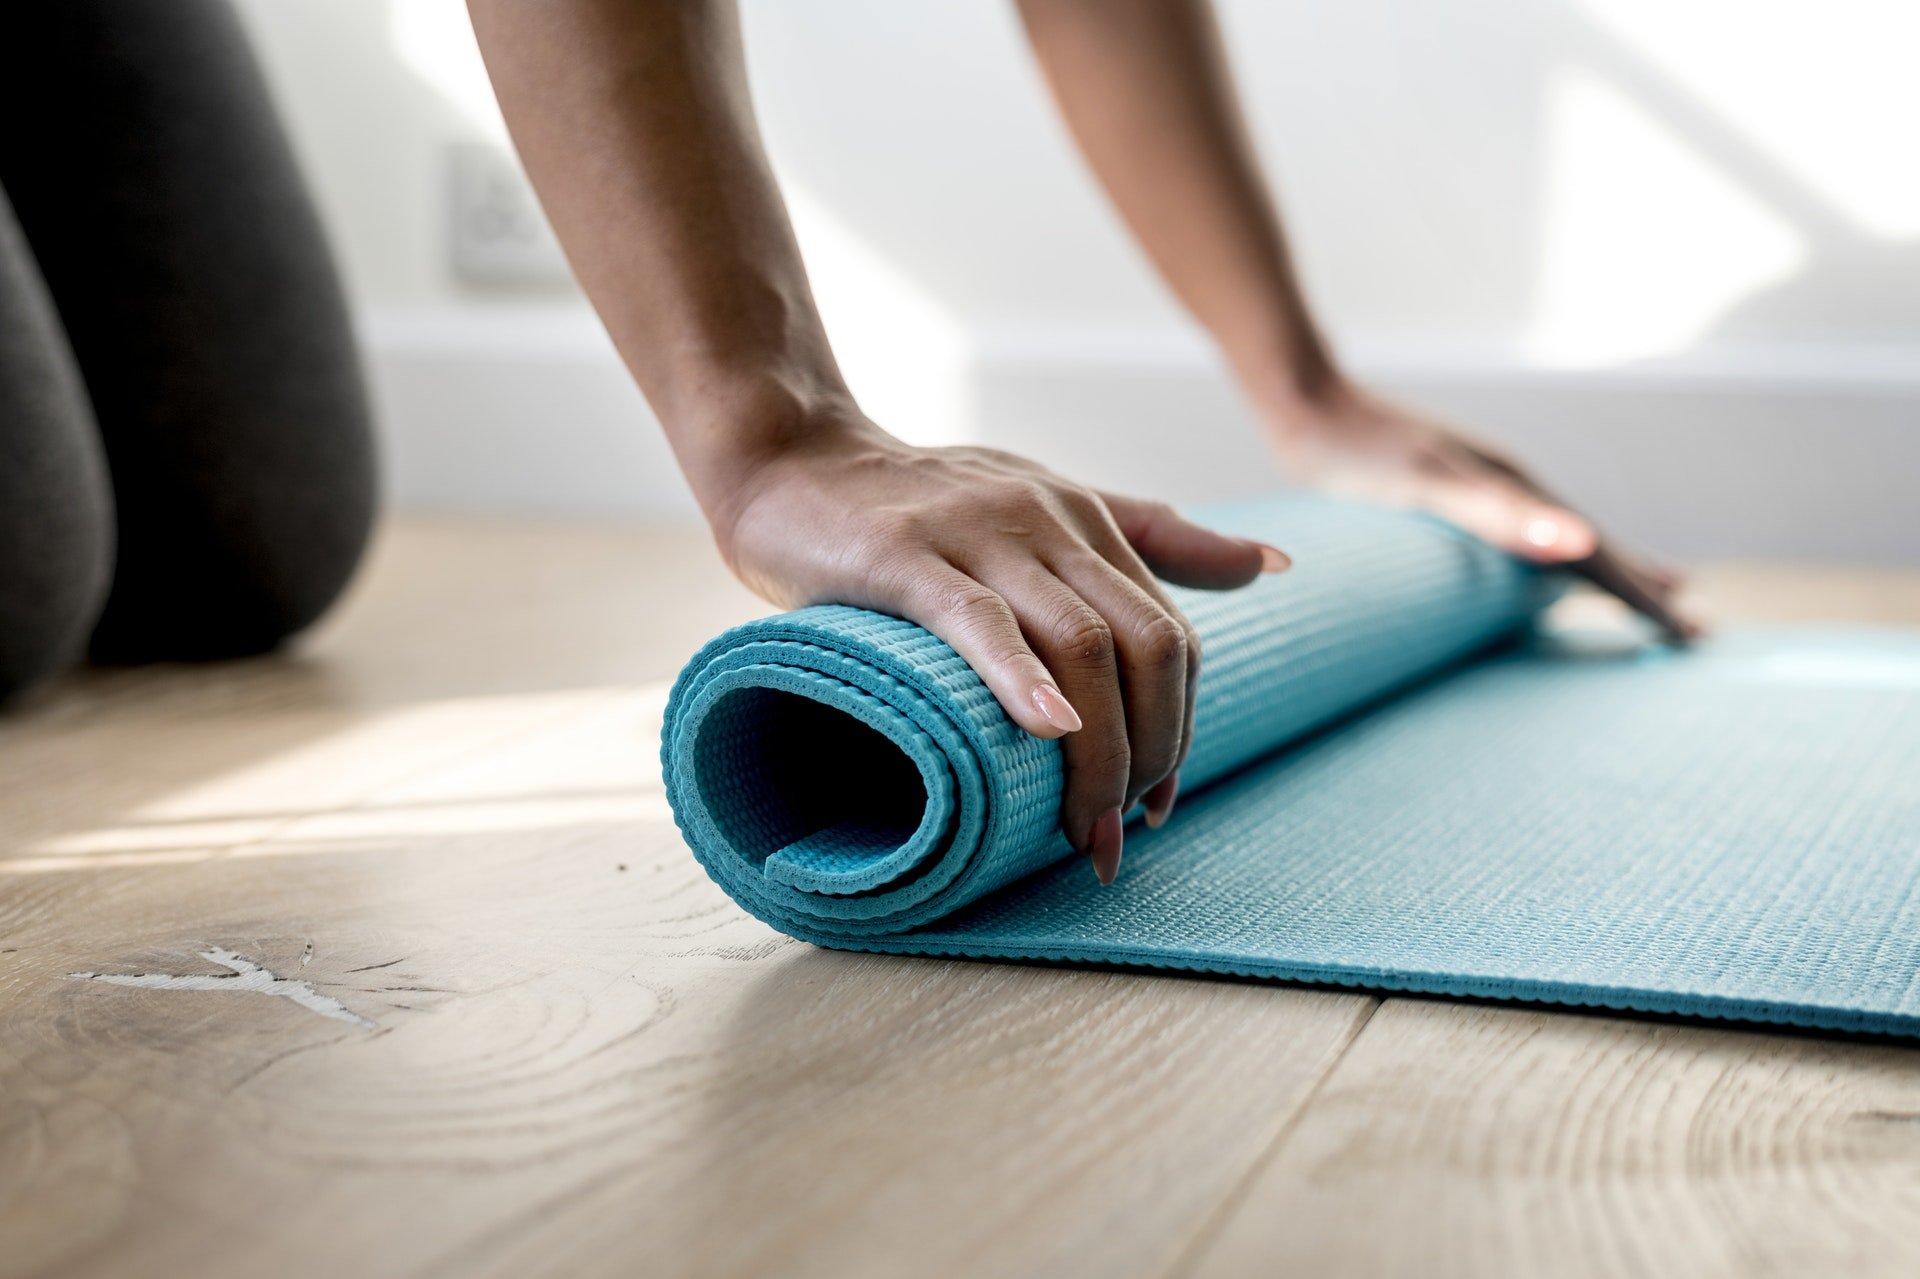 woman's hands rolling out yoga mat